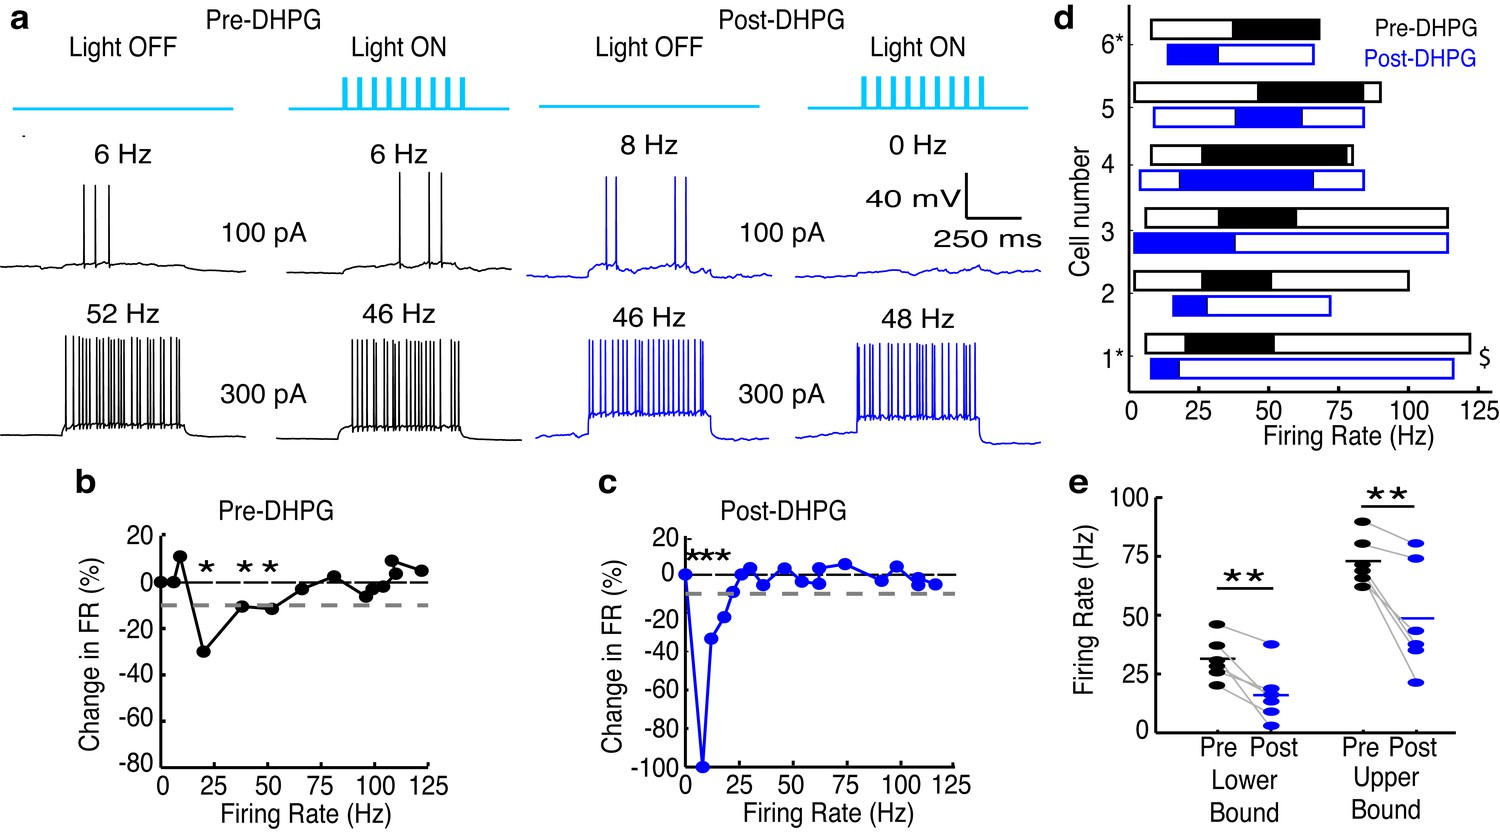 Distinct Lateral Inhibitory Circuits Drive Parallel Processing Of Increasing The Number Lamps In A Series Circuit Results Less Gc Excitability Shifts Effective Activity Range Inhibition Mcs To Lower Frequencies